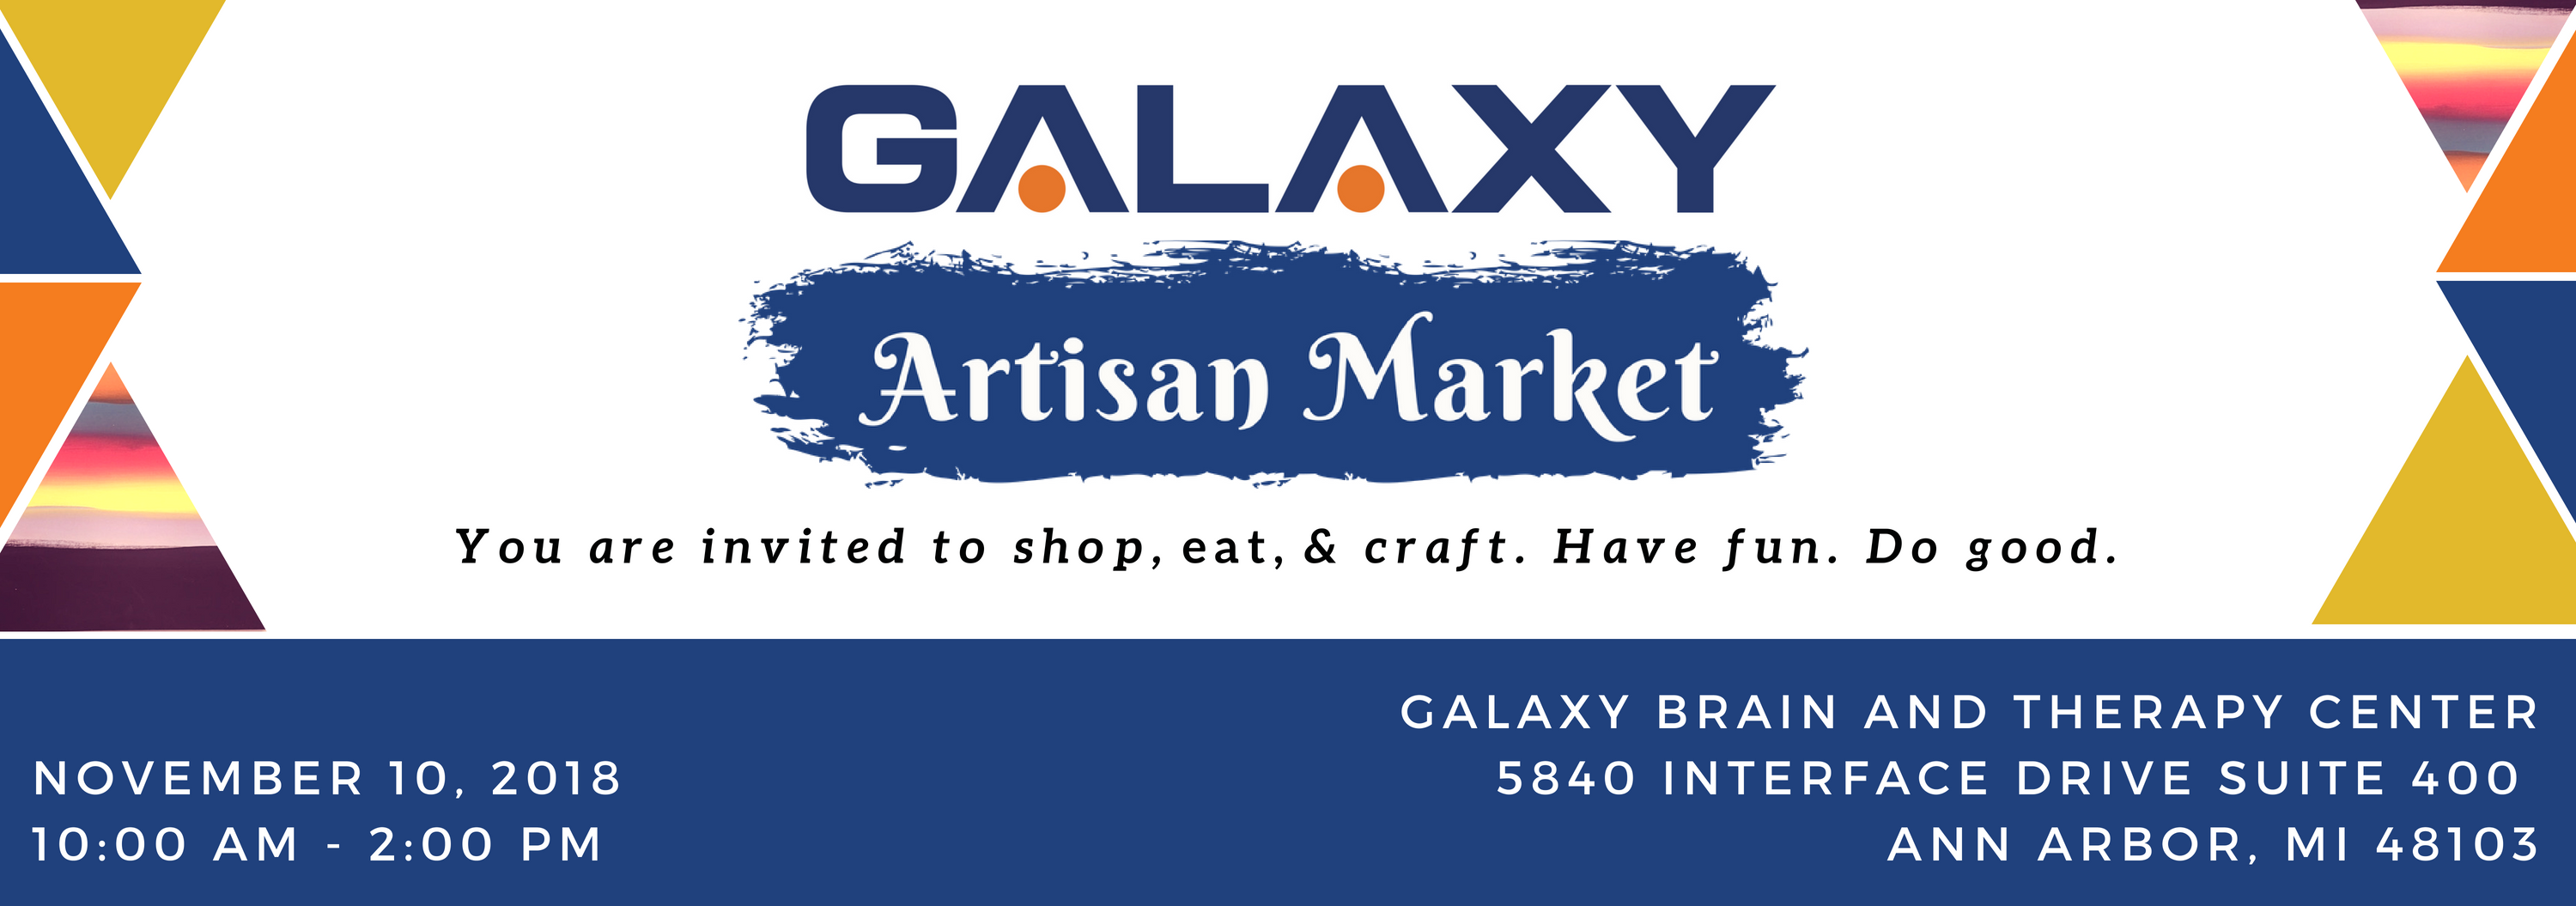 galaxy brain and therapy center artisan market